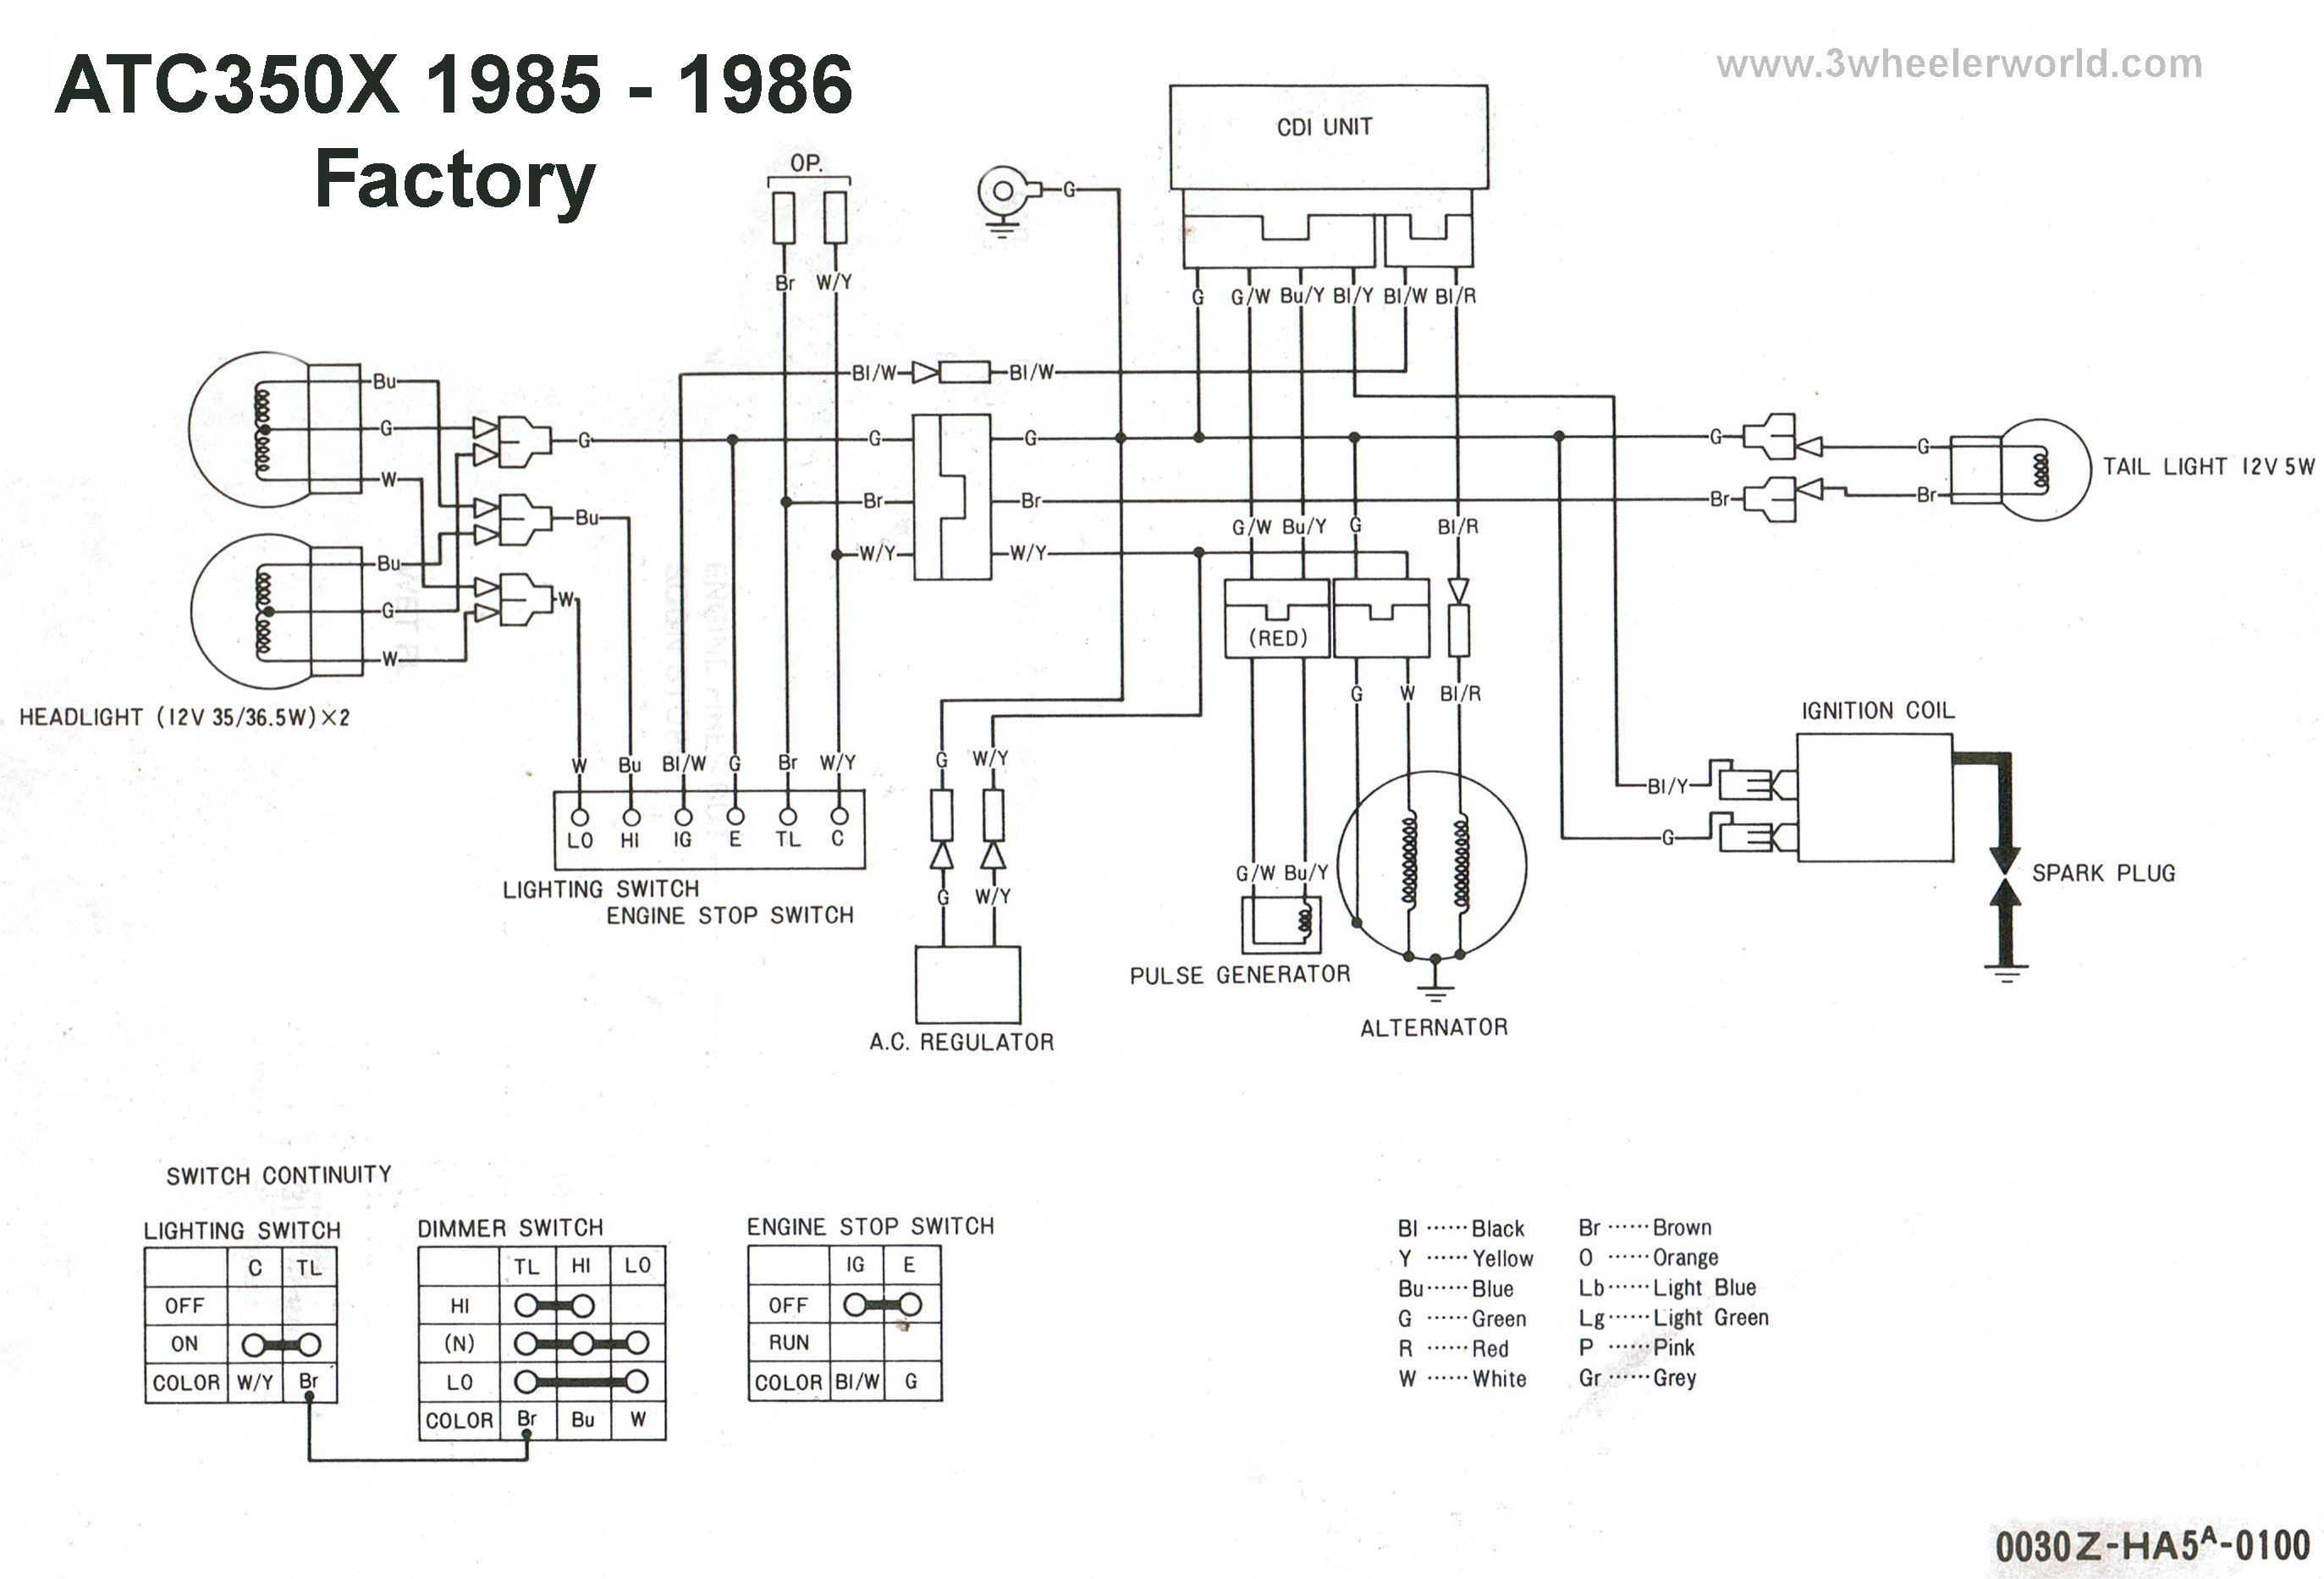 ATC350Xx85Thru86 3 wheeler world tech help honda wiring diagrams Basic Electrical Wiring Diagrams at gsmx.co